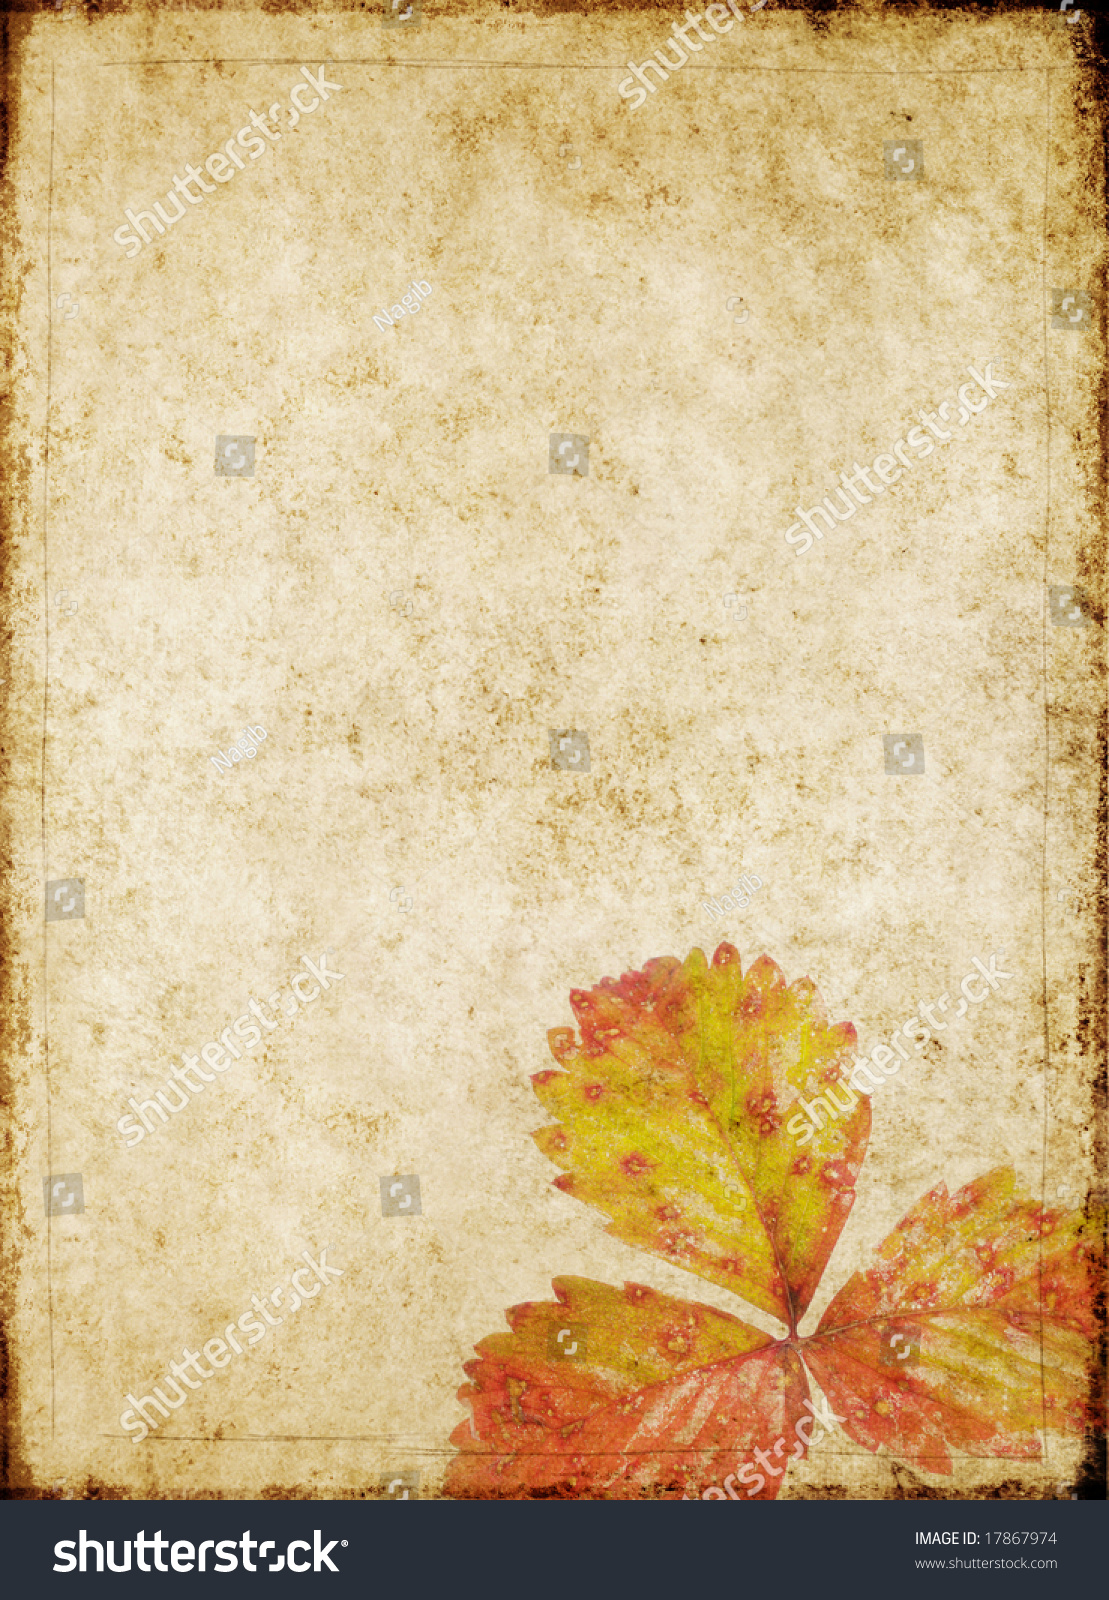 Lovely Brown Background Image With Interesting Texture And ... - photo#27